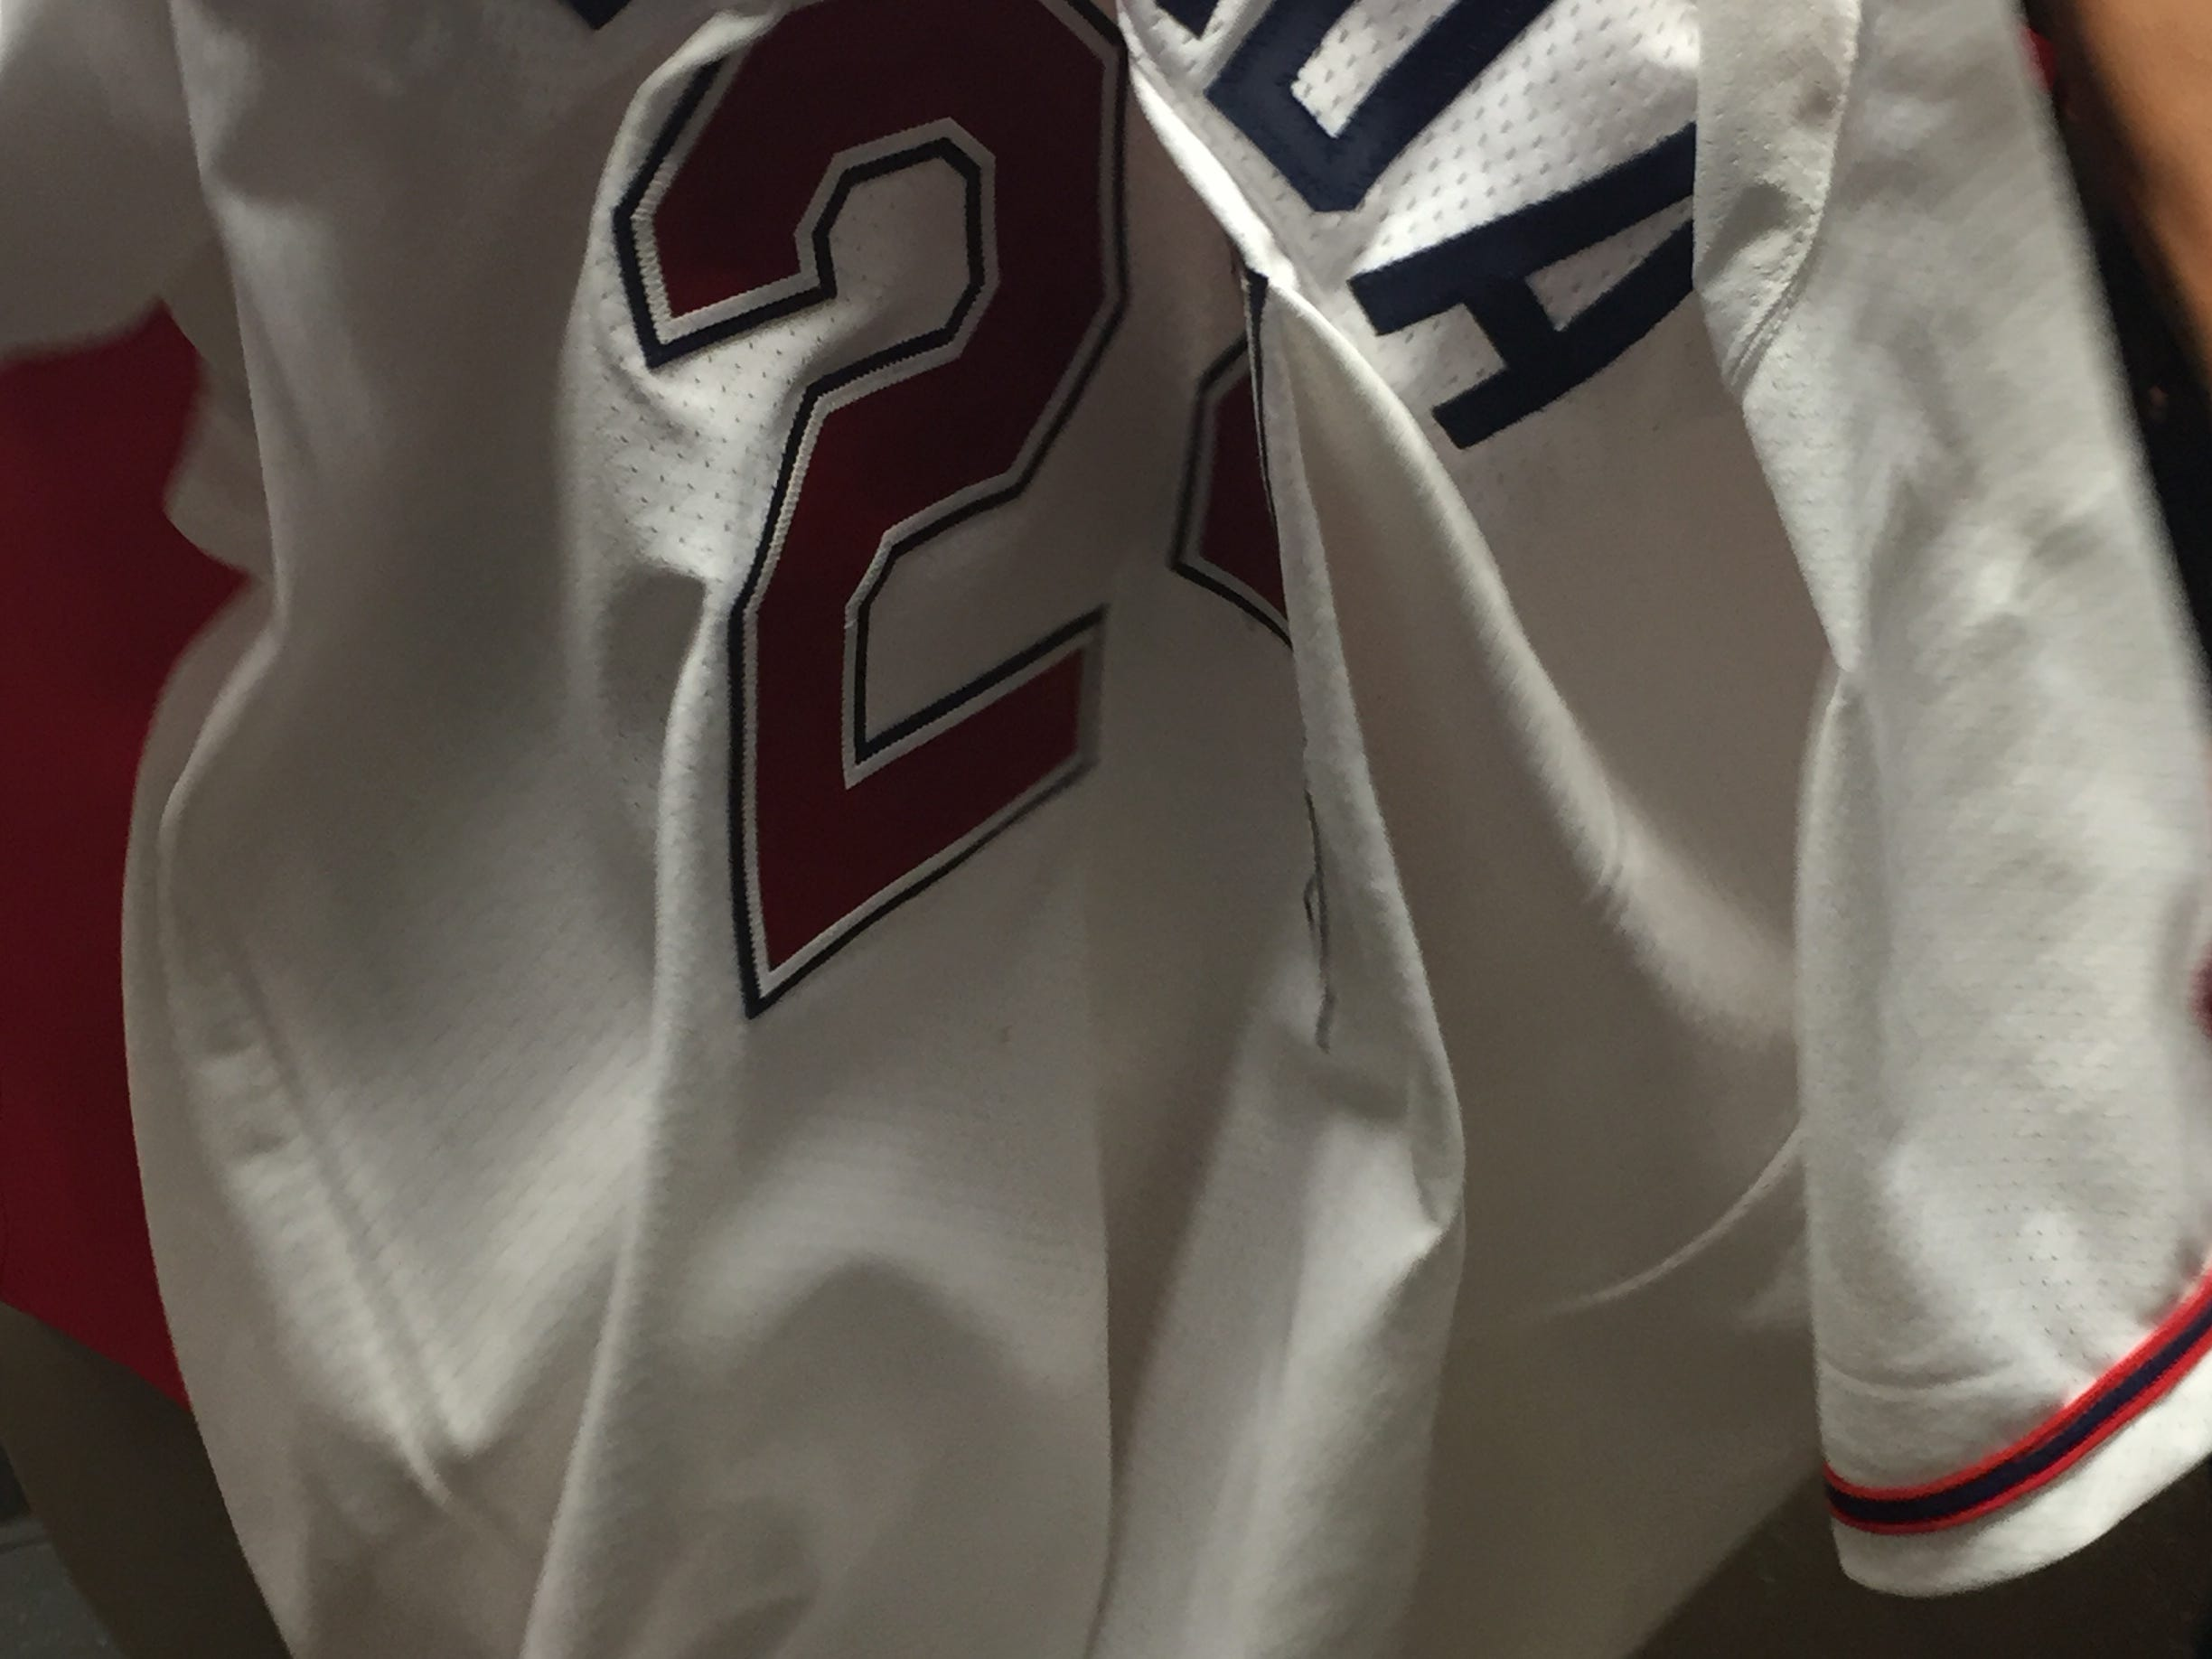 The jersey worn by Yoan Moncada for his first game with the Greenville Drive was authenticated by MLB on May 18, 2015.